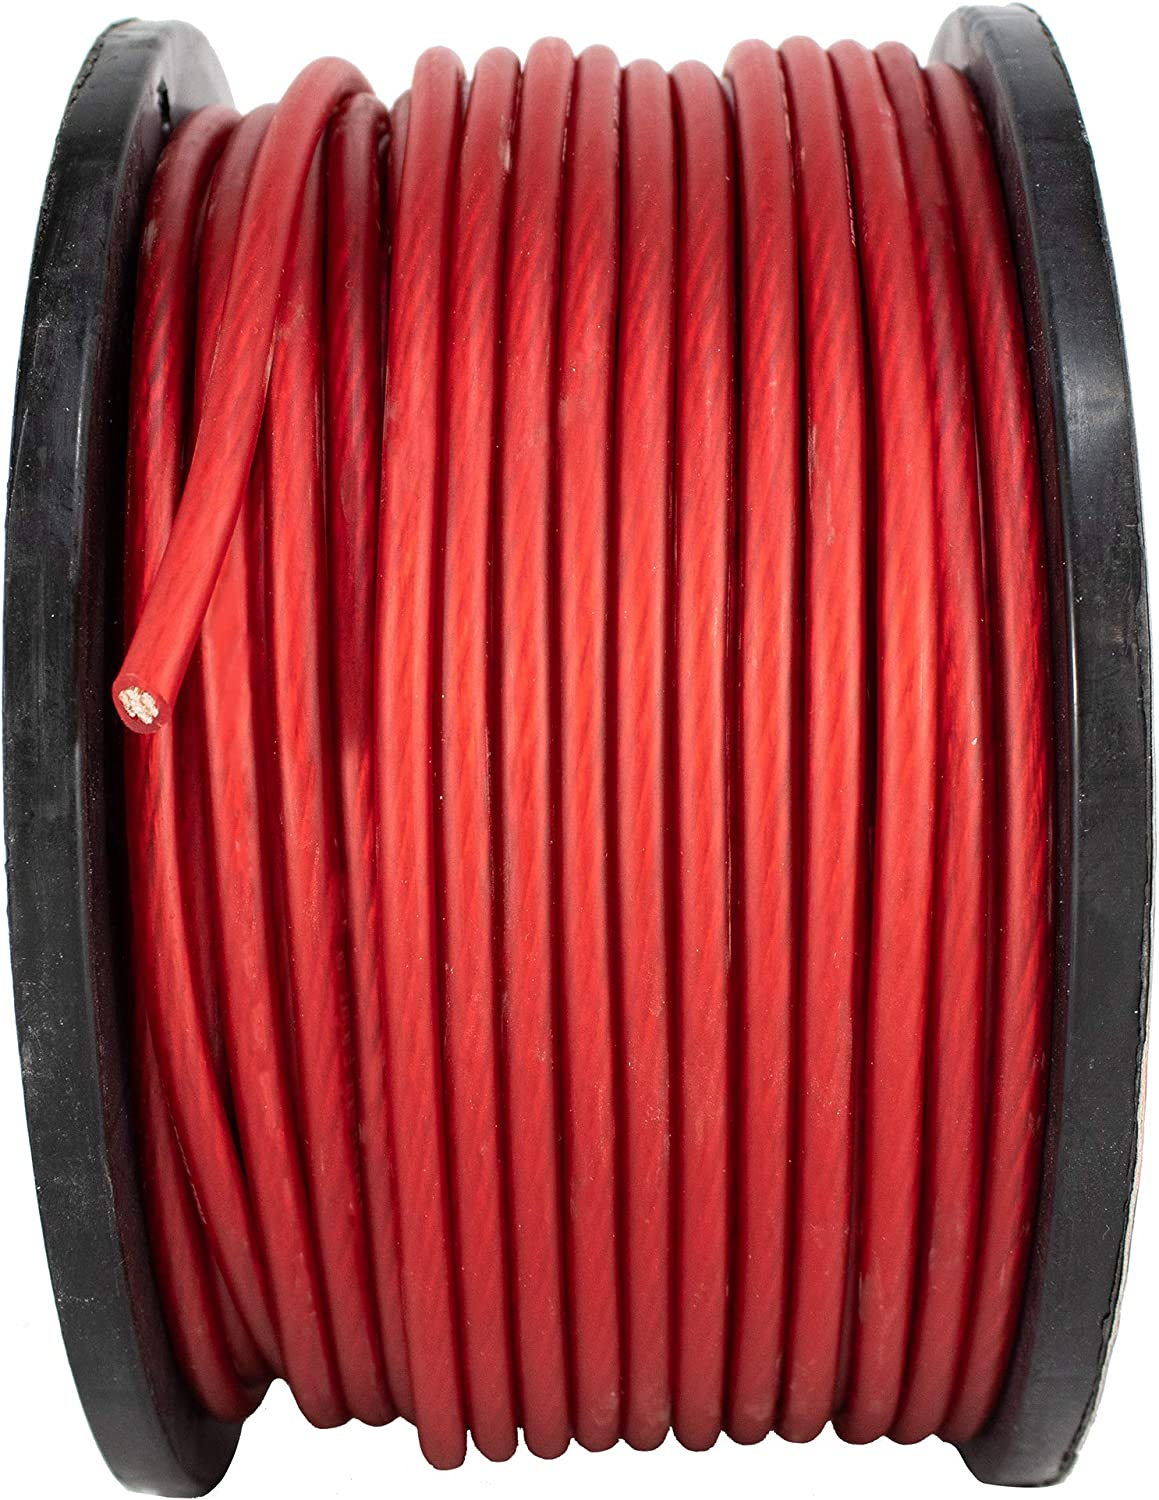 8 AWG 250FT Red Power Ground Wire Cable Copper Mix True AWG GA